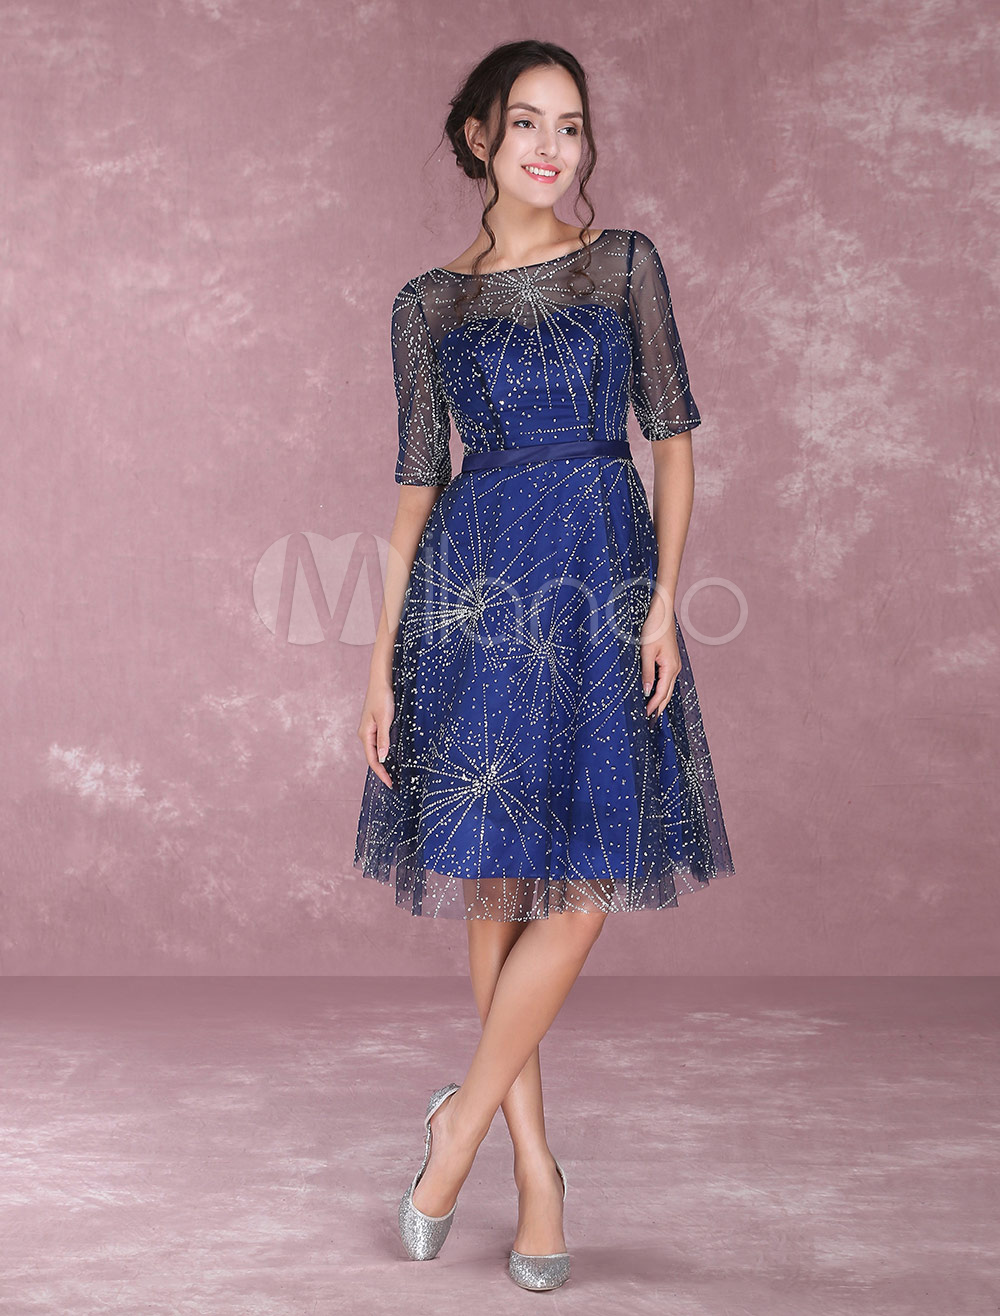 Buy Dark Navy Cocktail Dresses Half Sleeve Illusion Knee Length Wedding Guest Dresses for $84.49 in Milanoo store